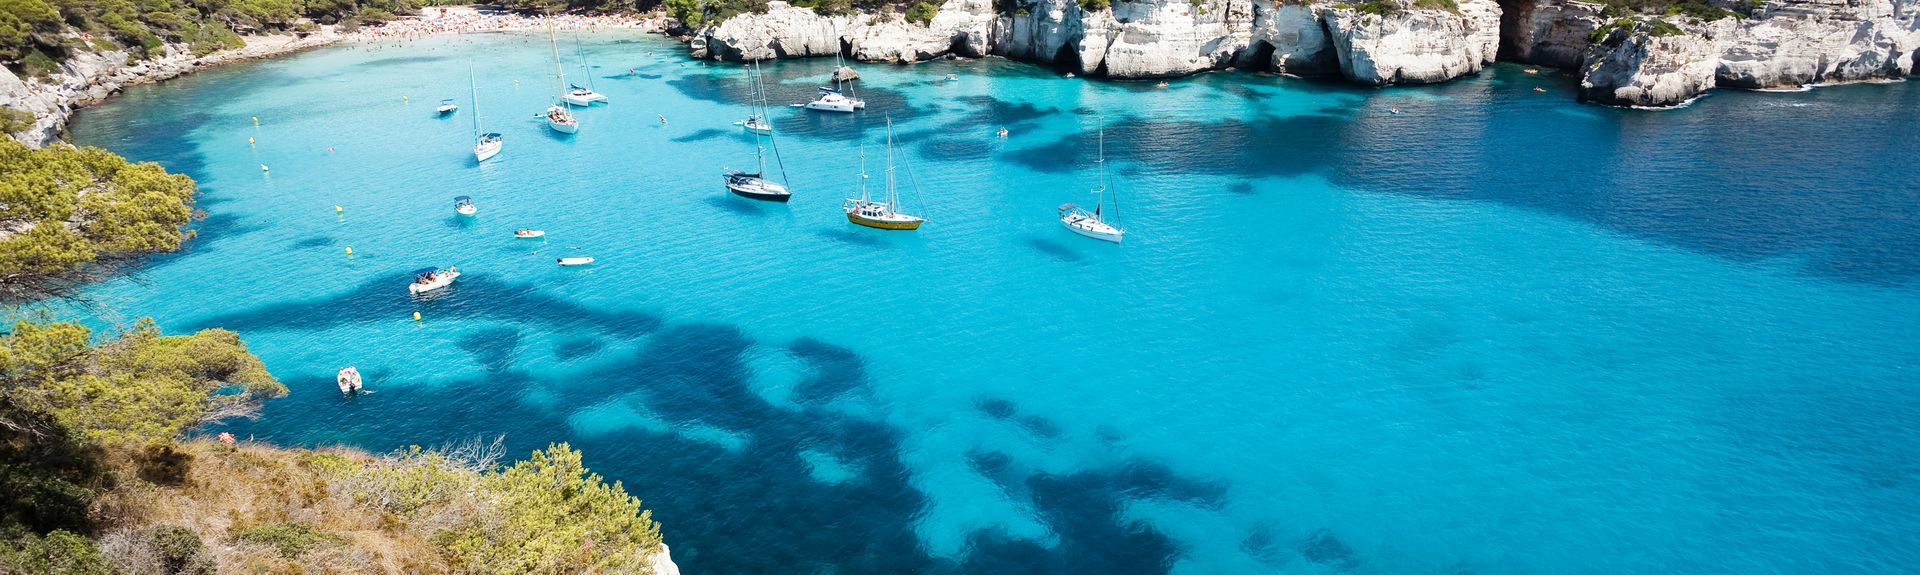 Menorca, Balearic Islands, Spain